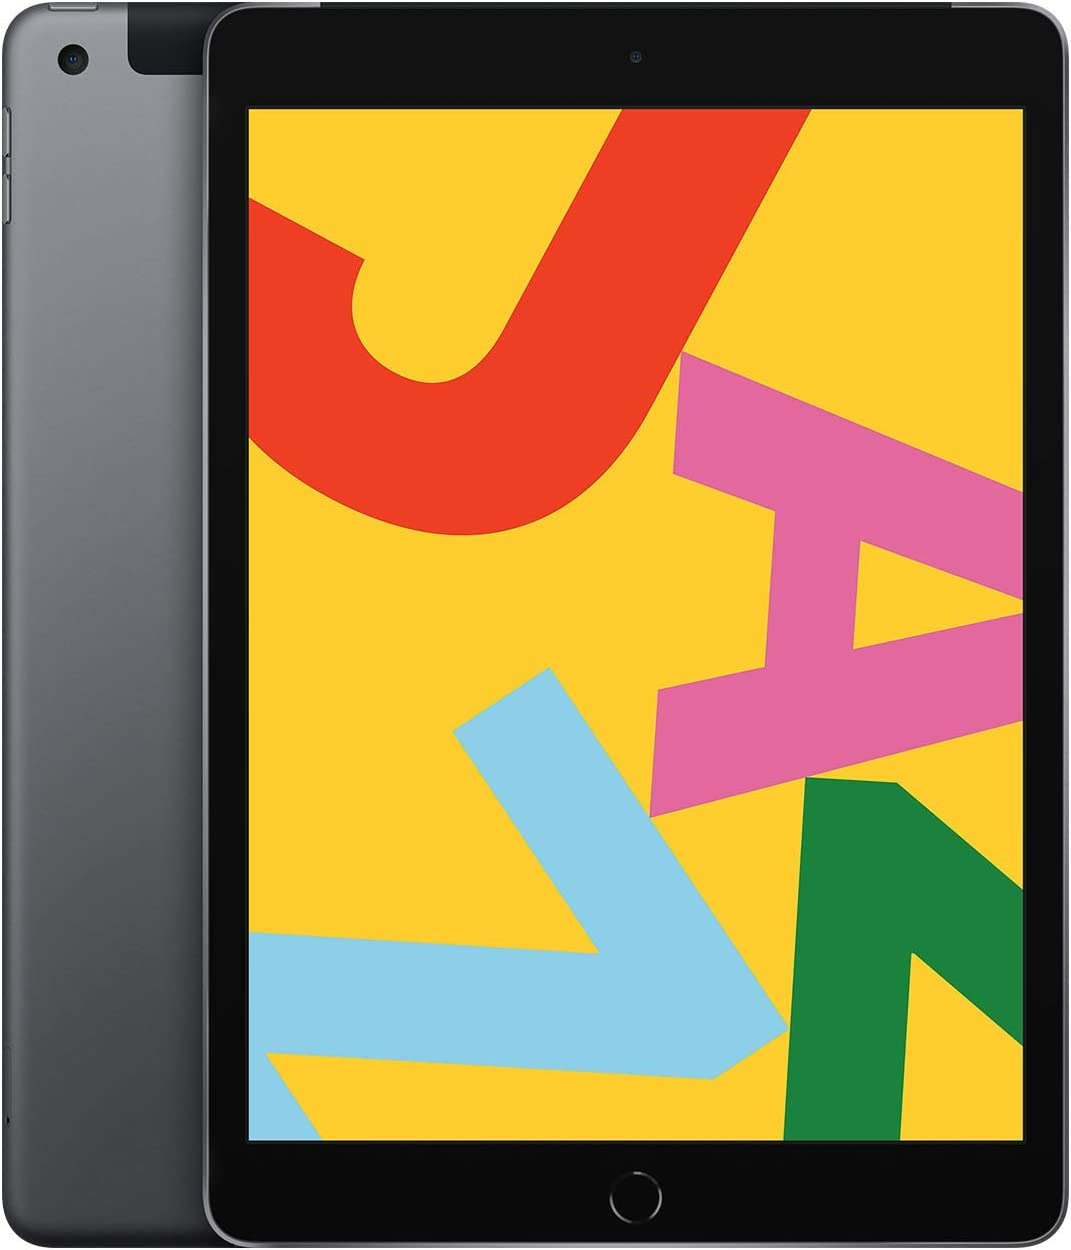 New Apple iPad (10.2-Inch, Wi-Fi + Cellular, 32GB) - Space Gray (Latest Model)